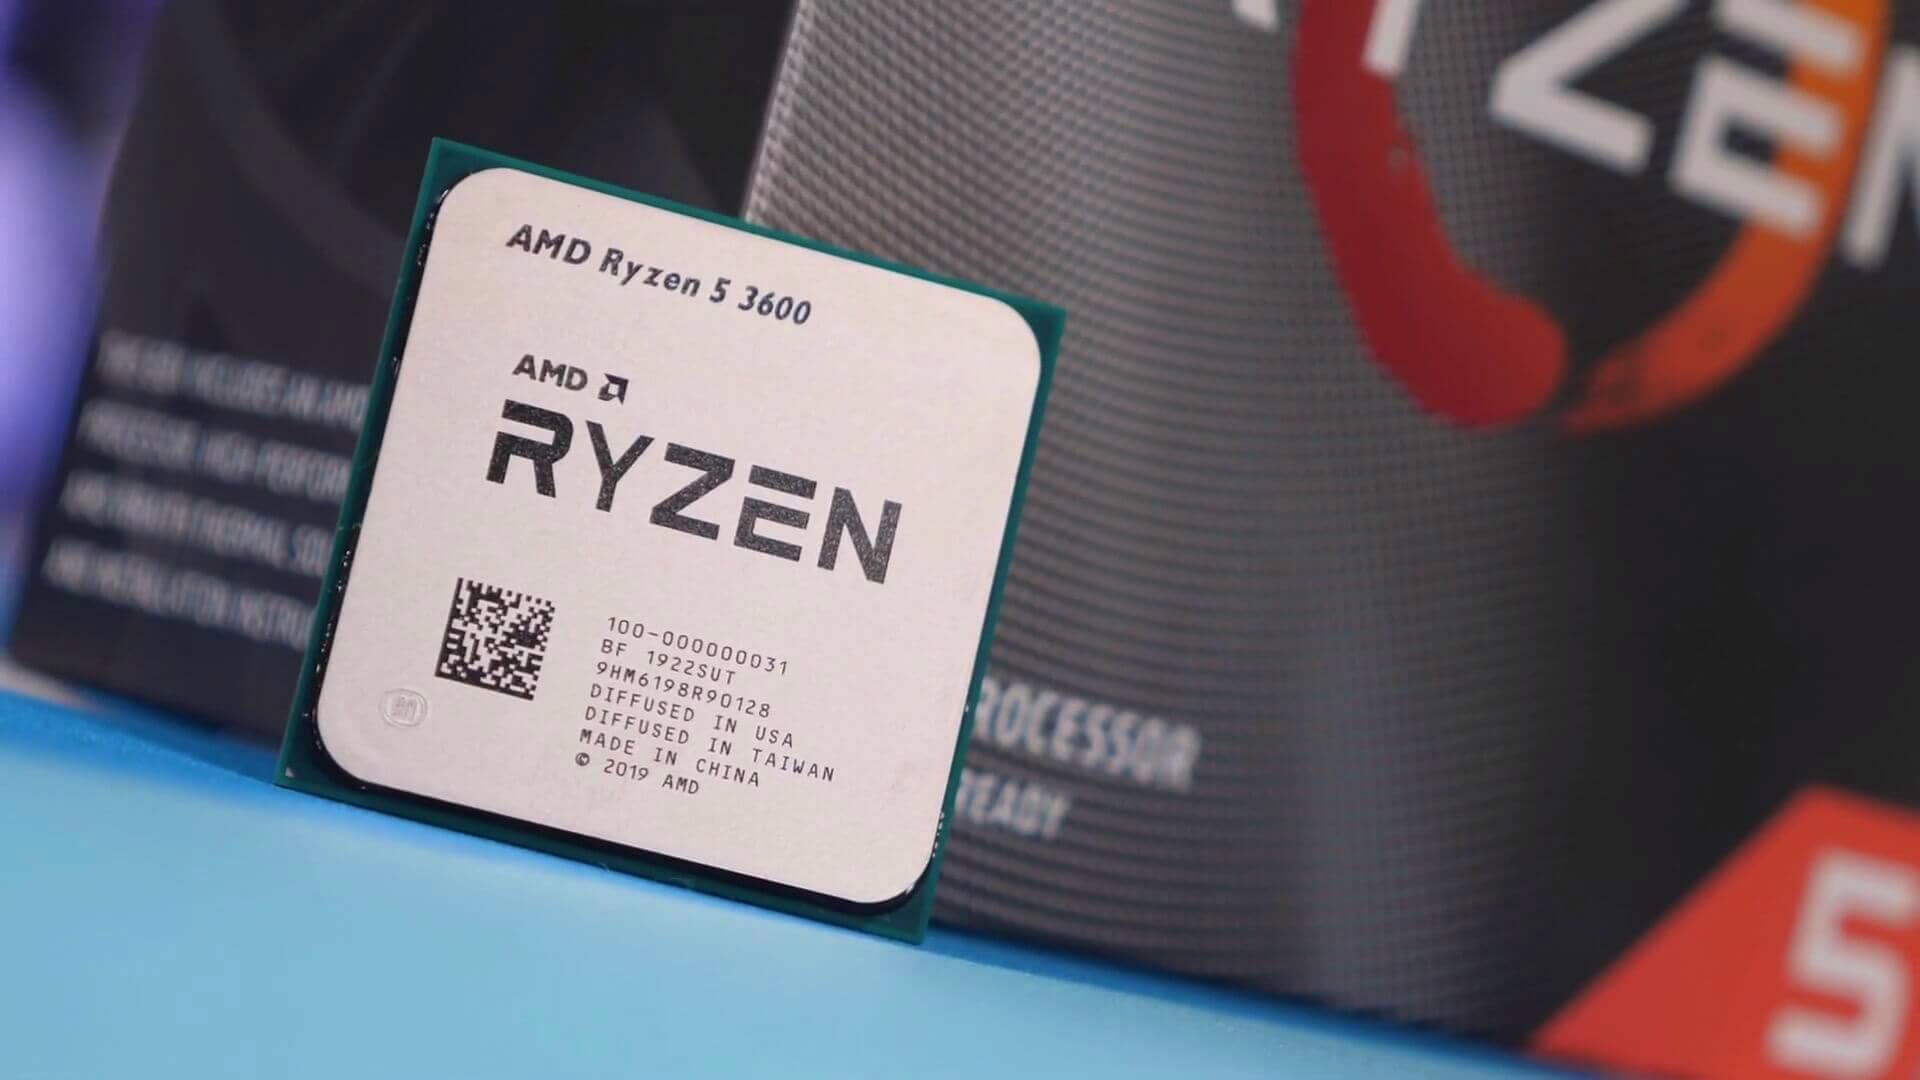 AMD Ryzen 5 3600 Review: Best All-Round Value CPU - TechSpot